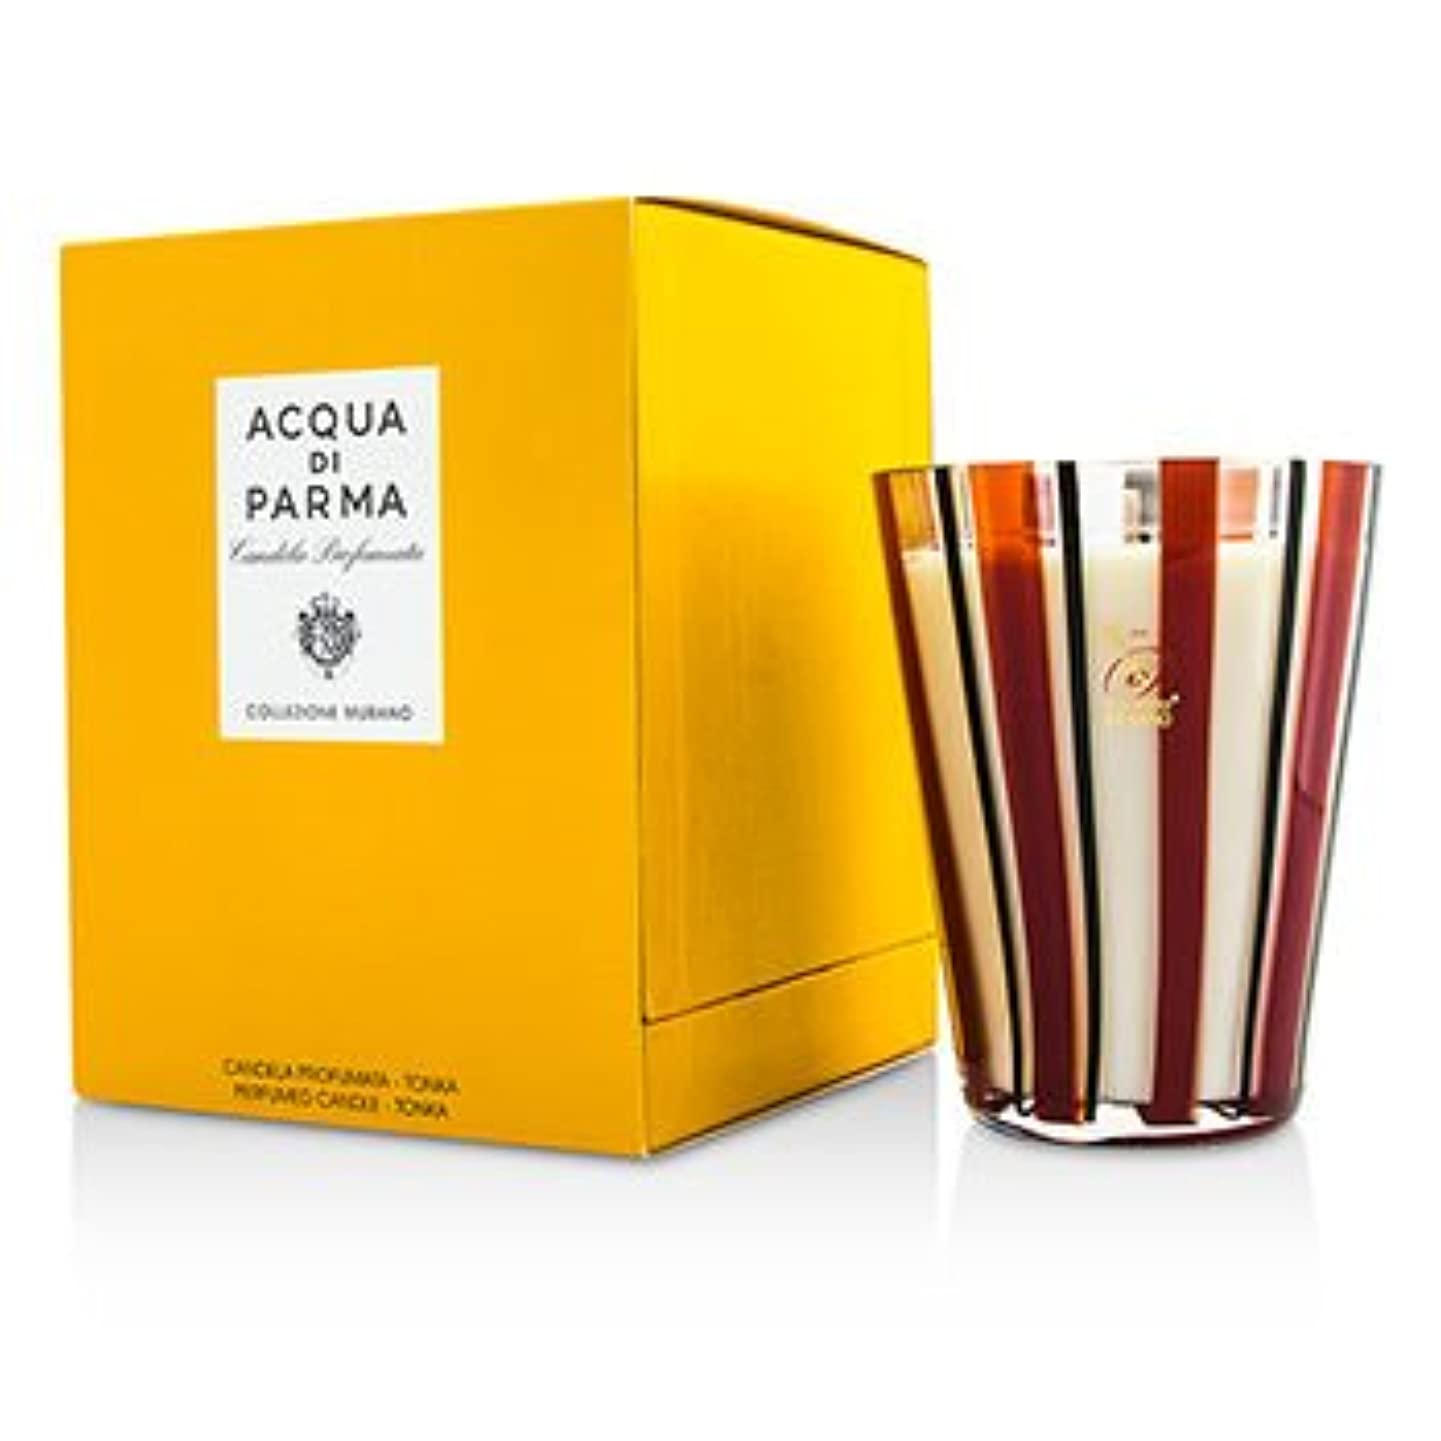 [Acqua Di Parma] Murano Glass Perfumed Candle - Tonka 200g/7.05oz